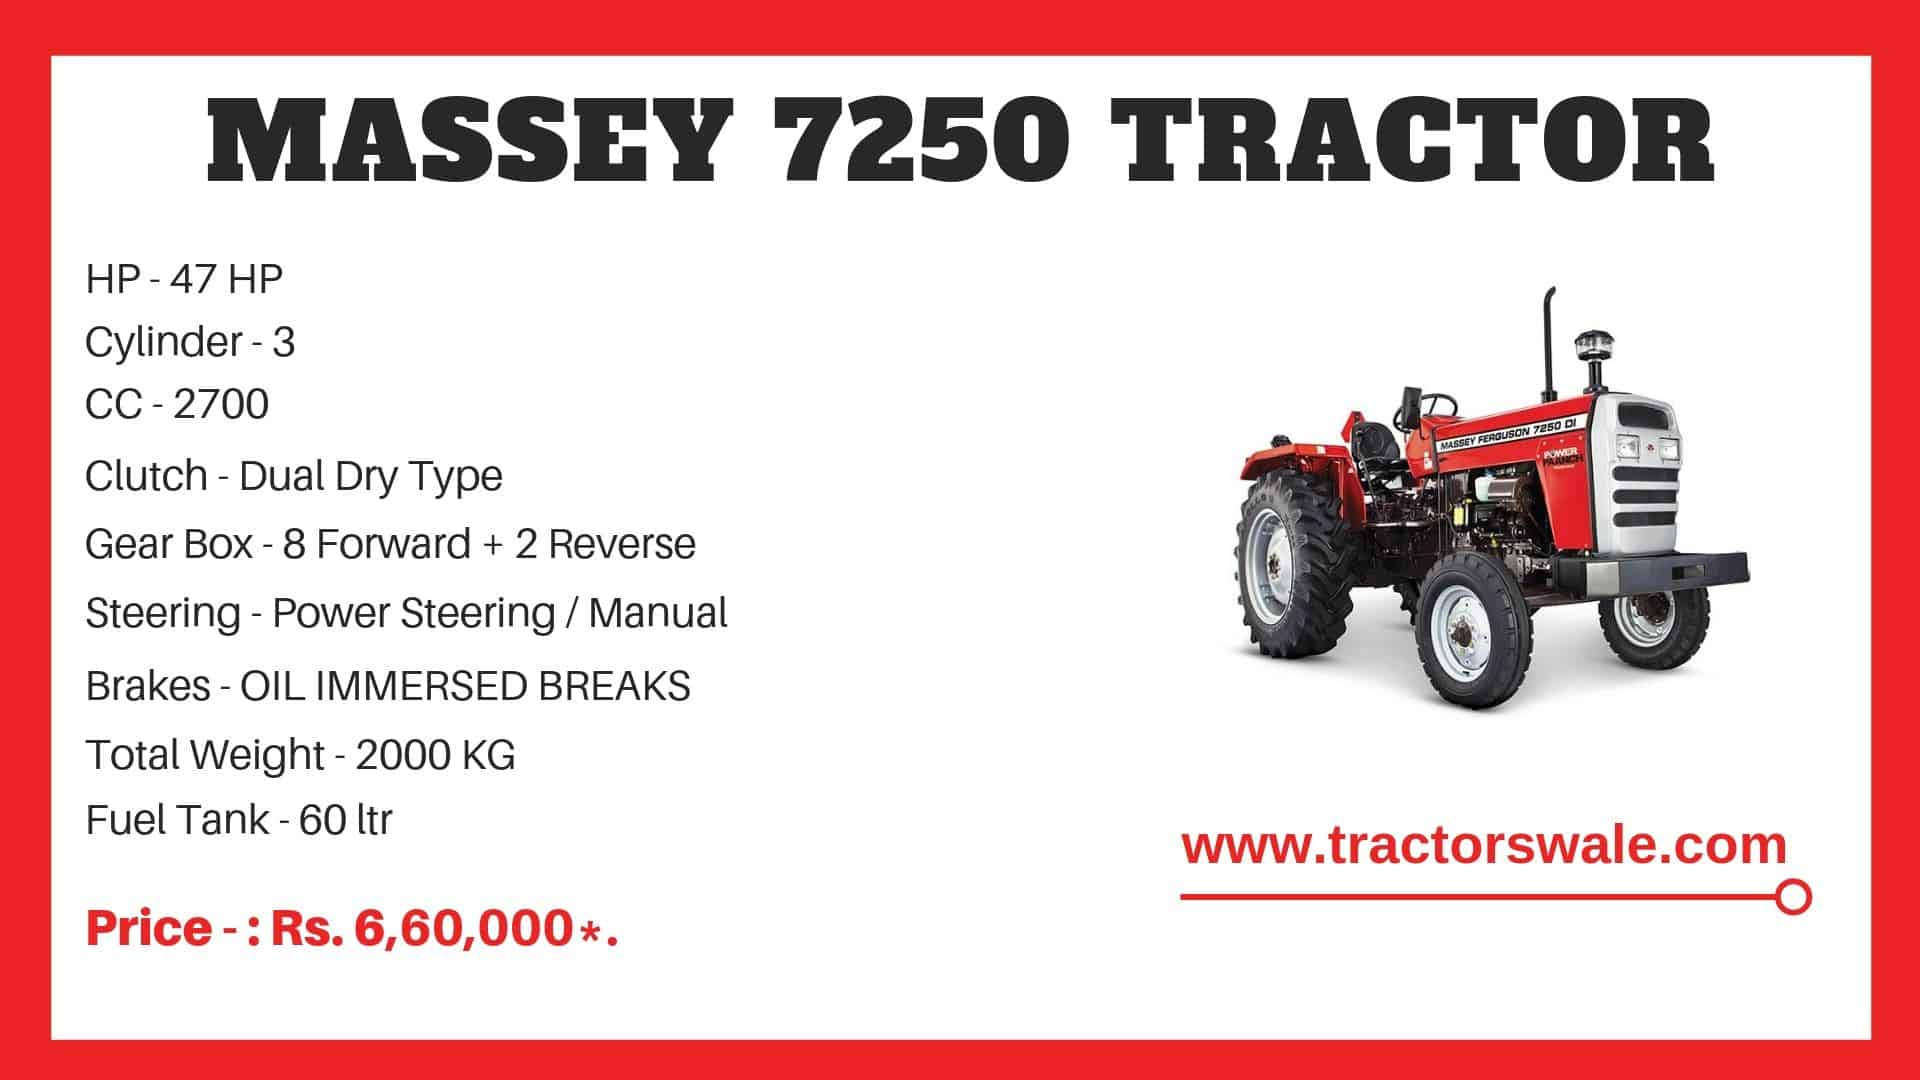 Specifications Of Massey Ferguson 7250 Tractor